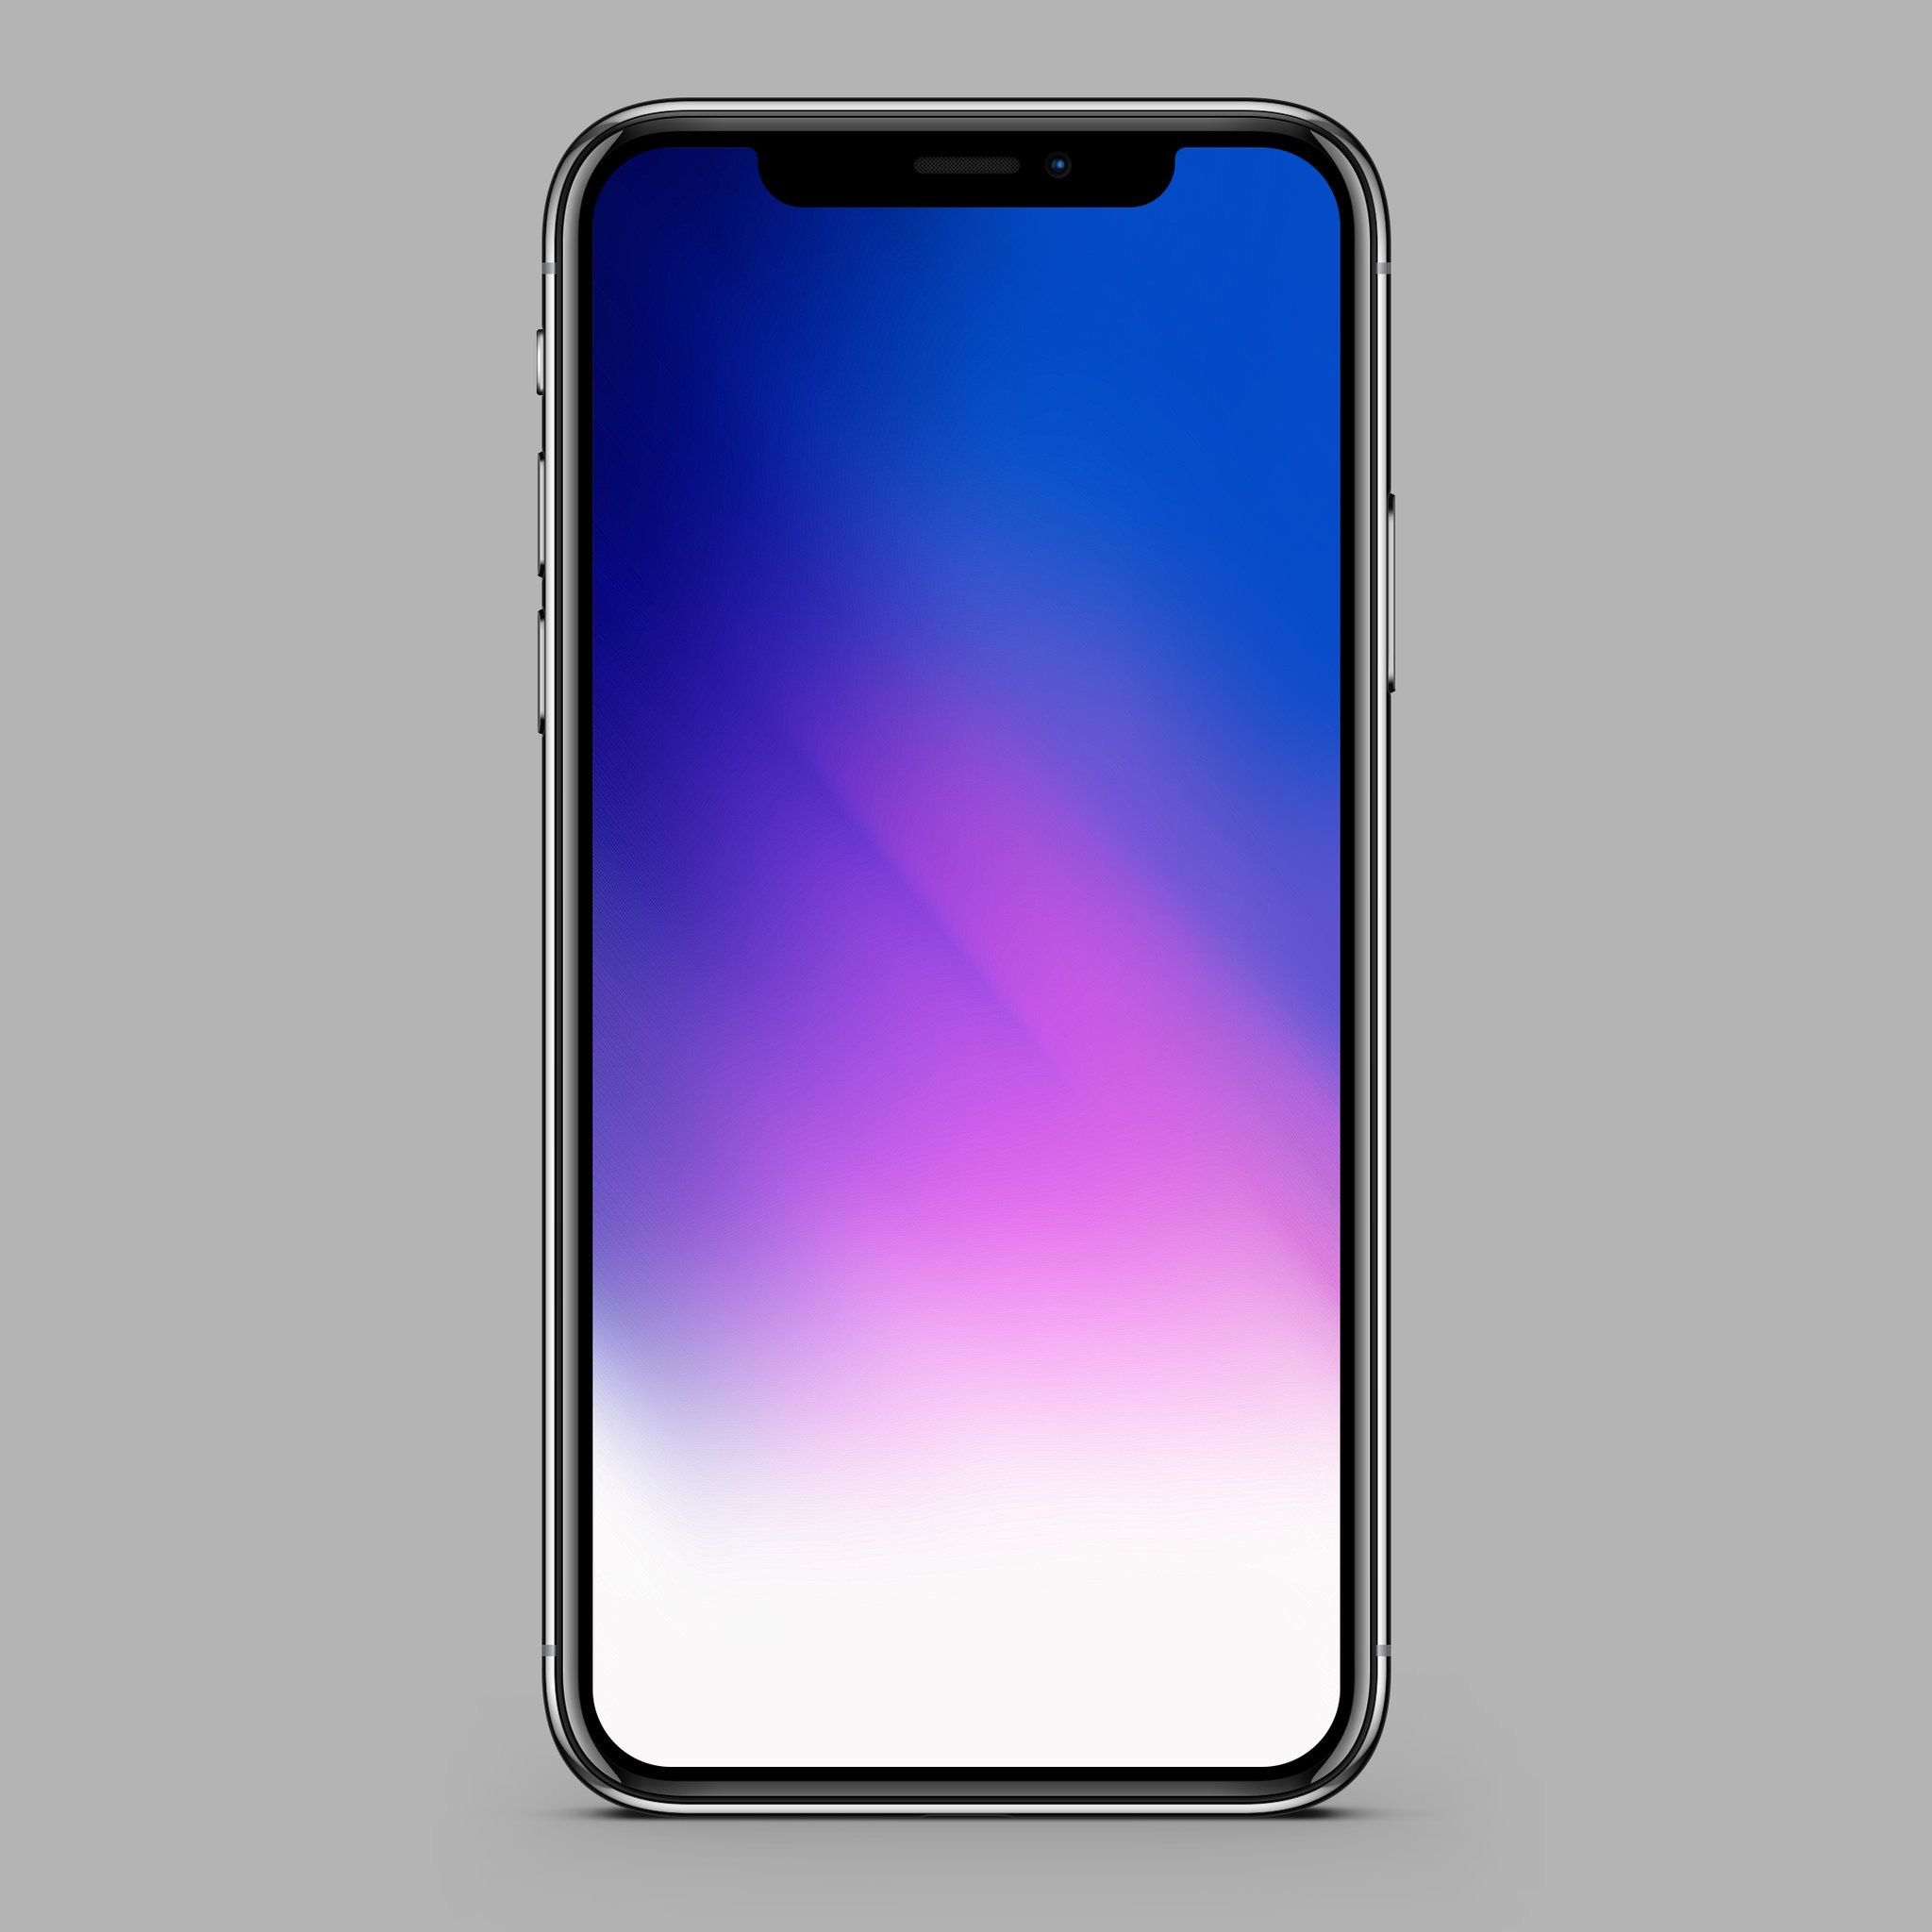 wallpapers ios homescreen Simple wallpaper for